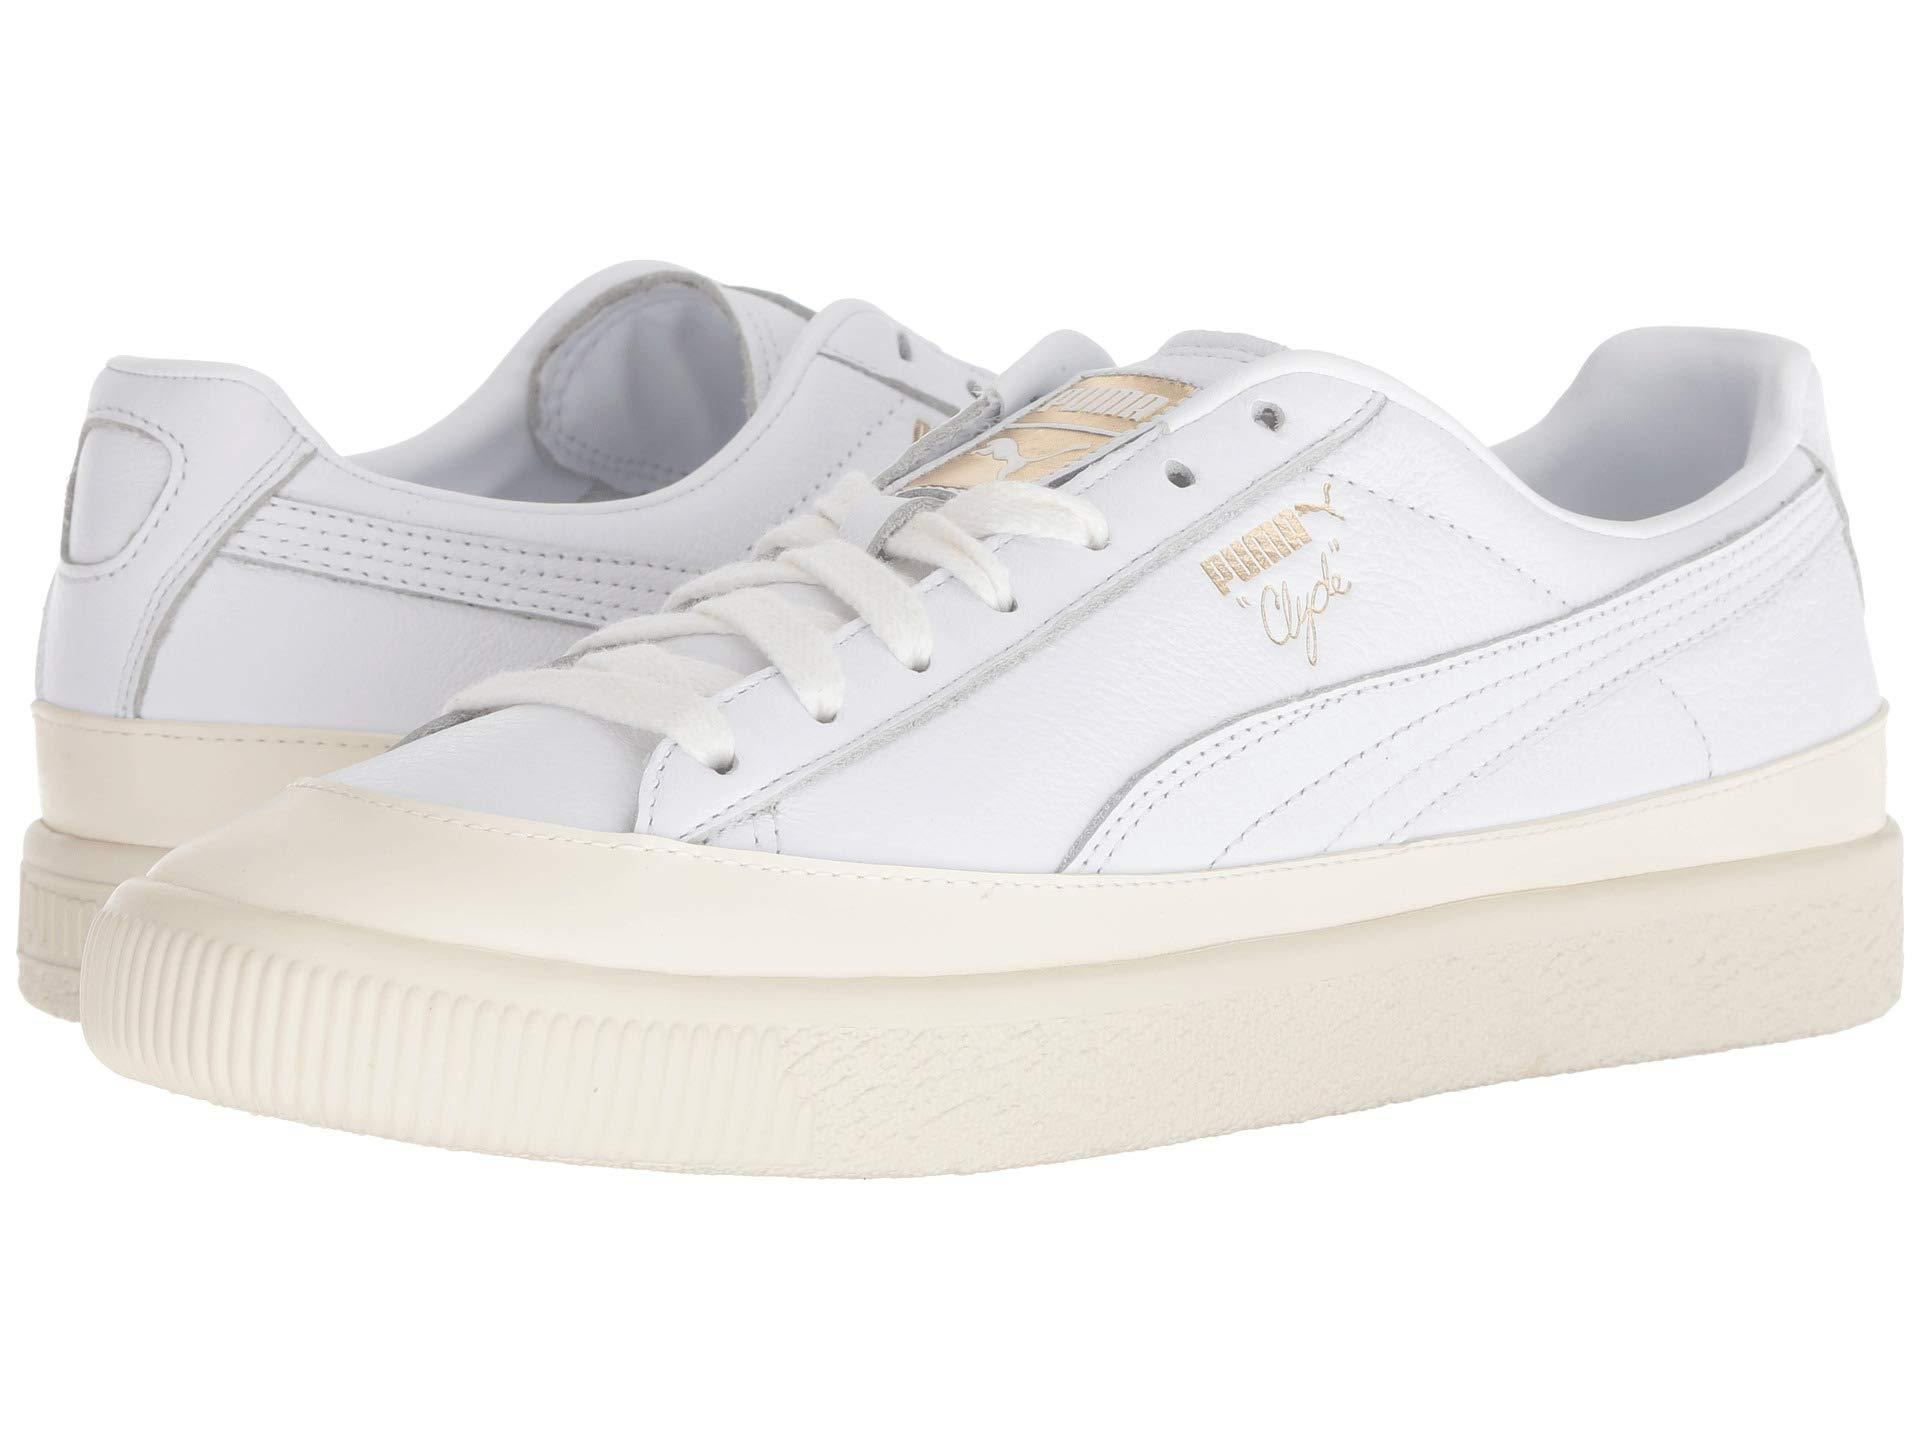 16988c3b8d9 Lyst - PUMA Clyde Rubber Toe Leather in White for Men - Save 13%